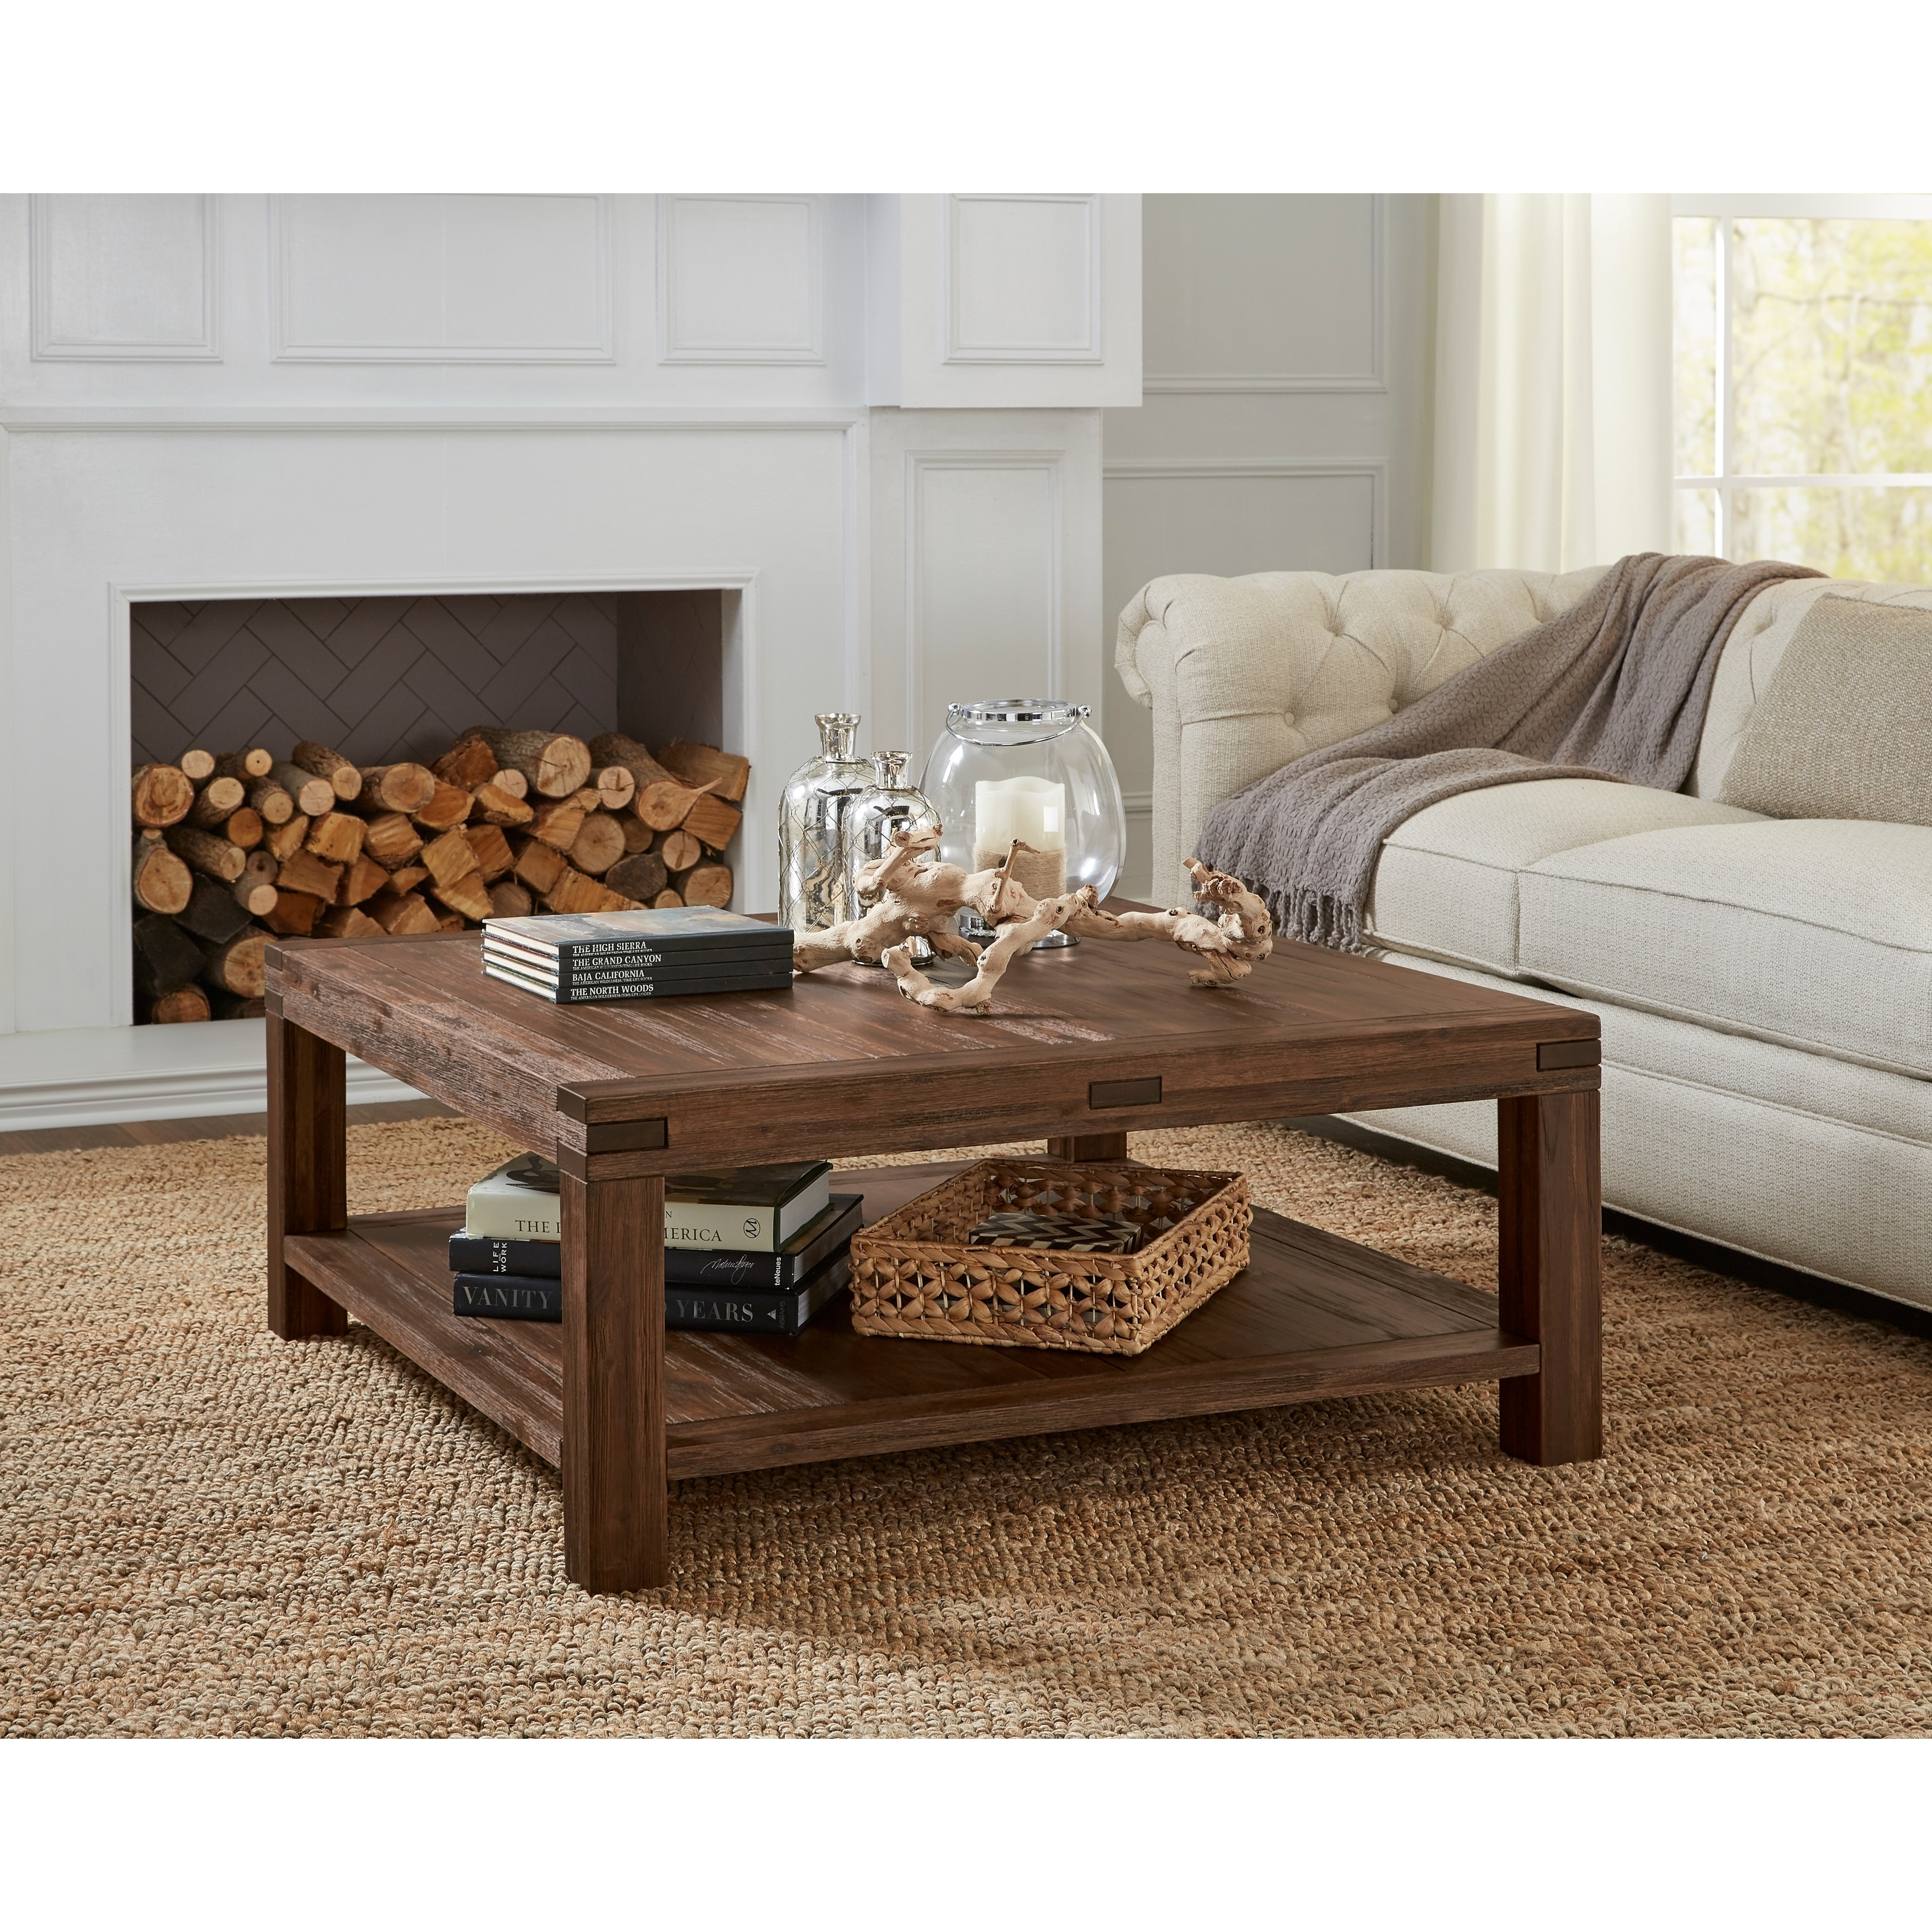 meadow solid wood square coffee table in brick brown